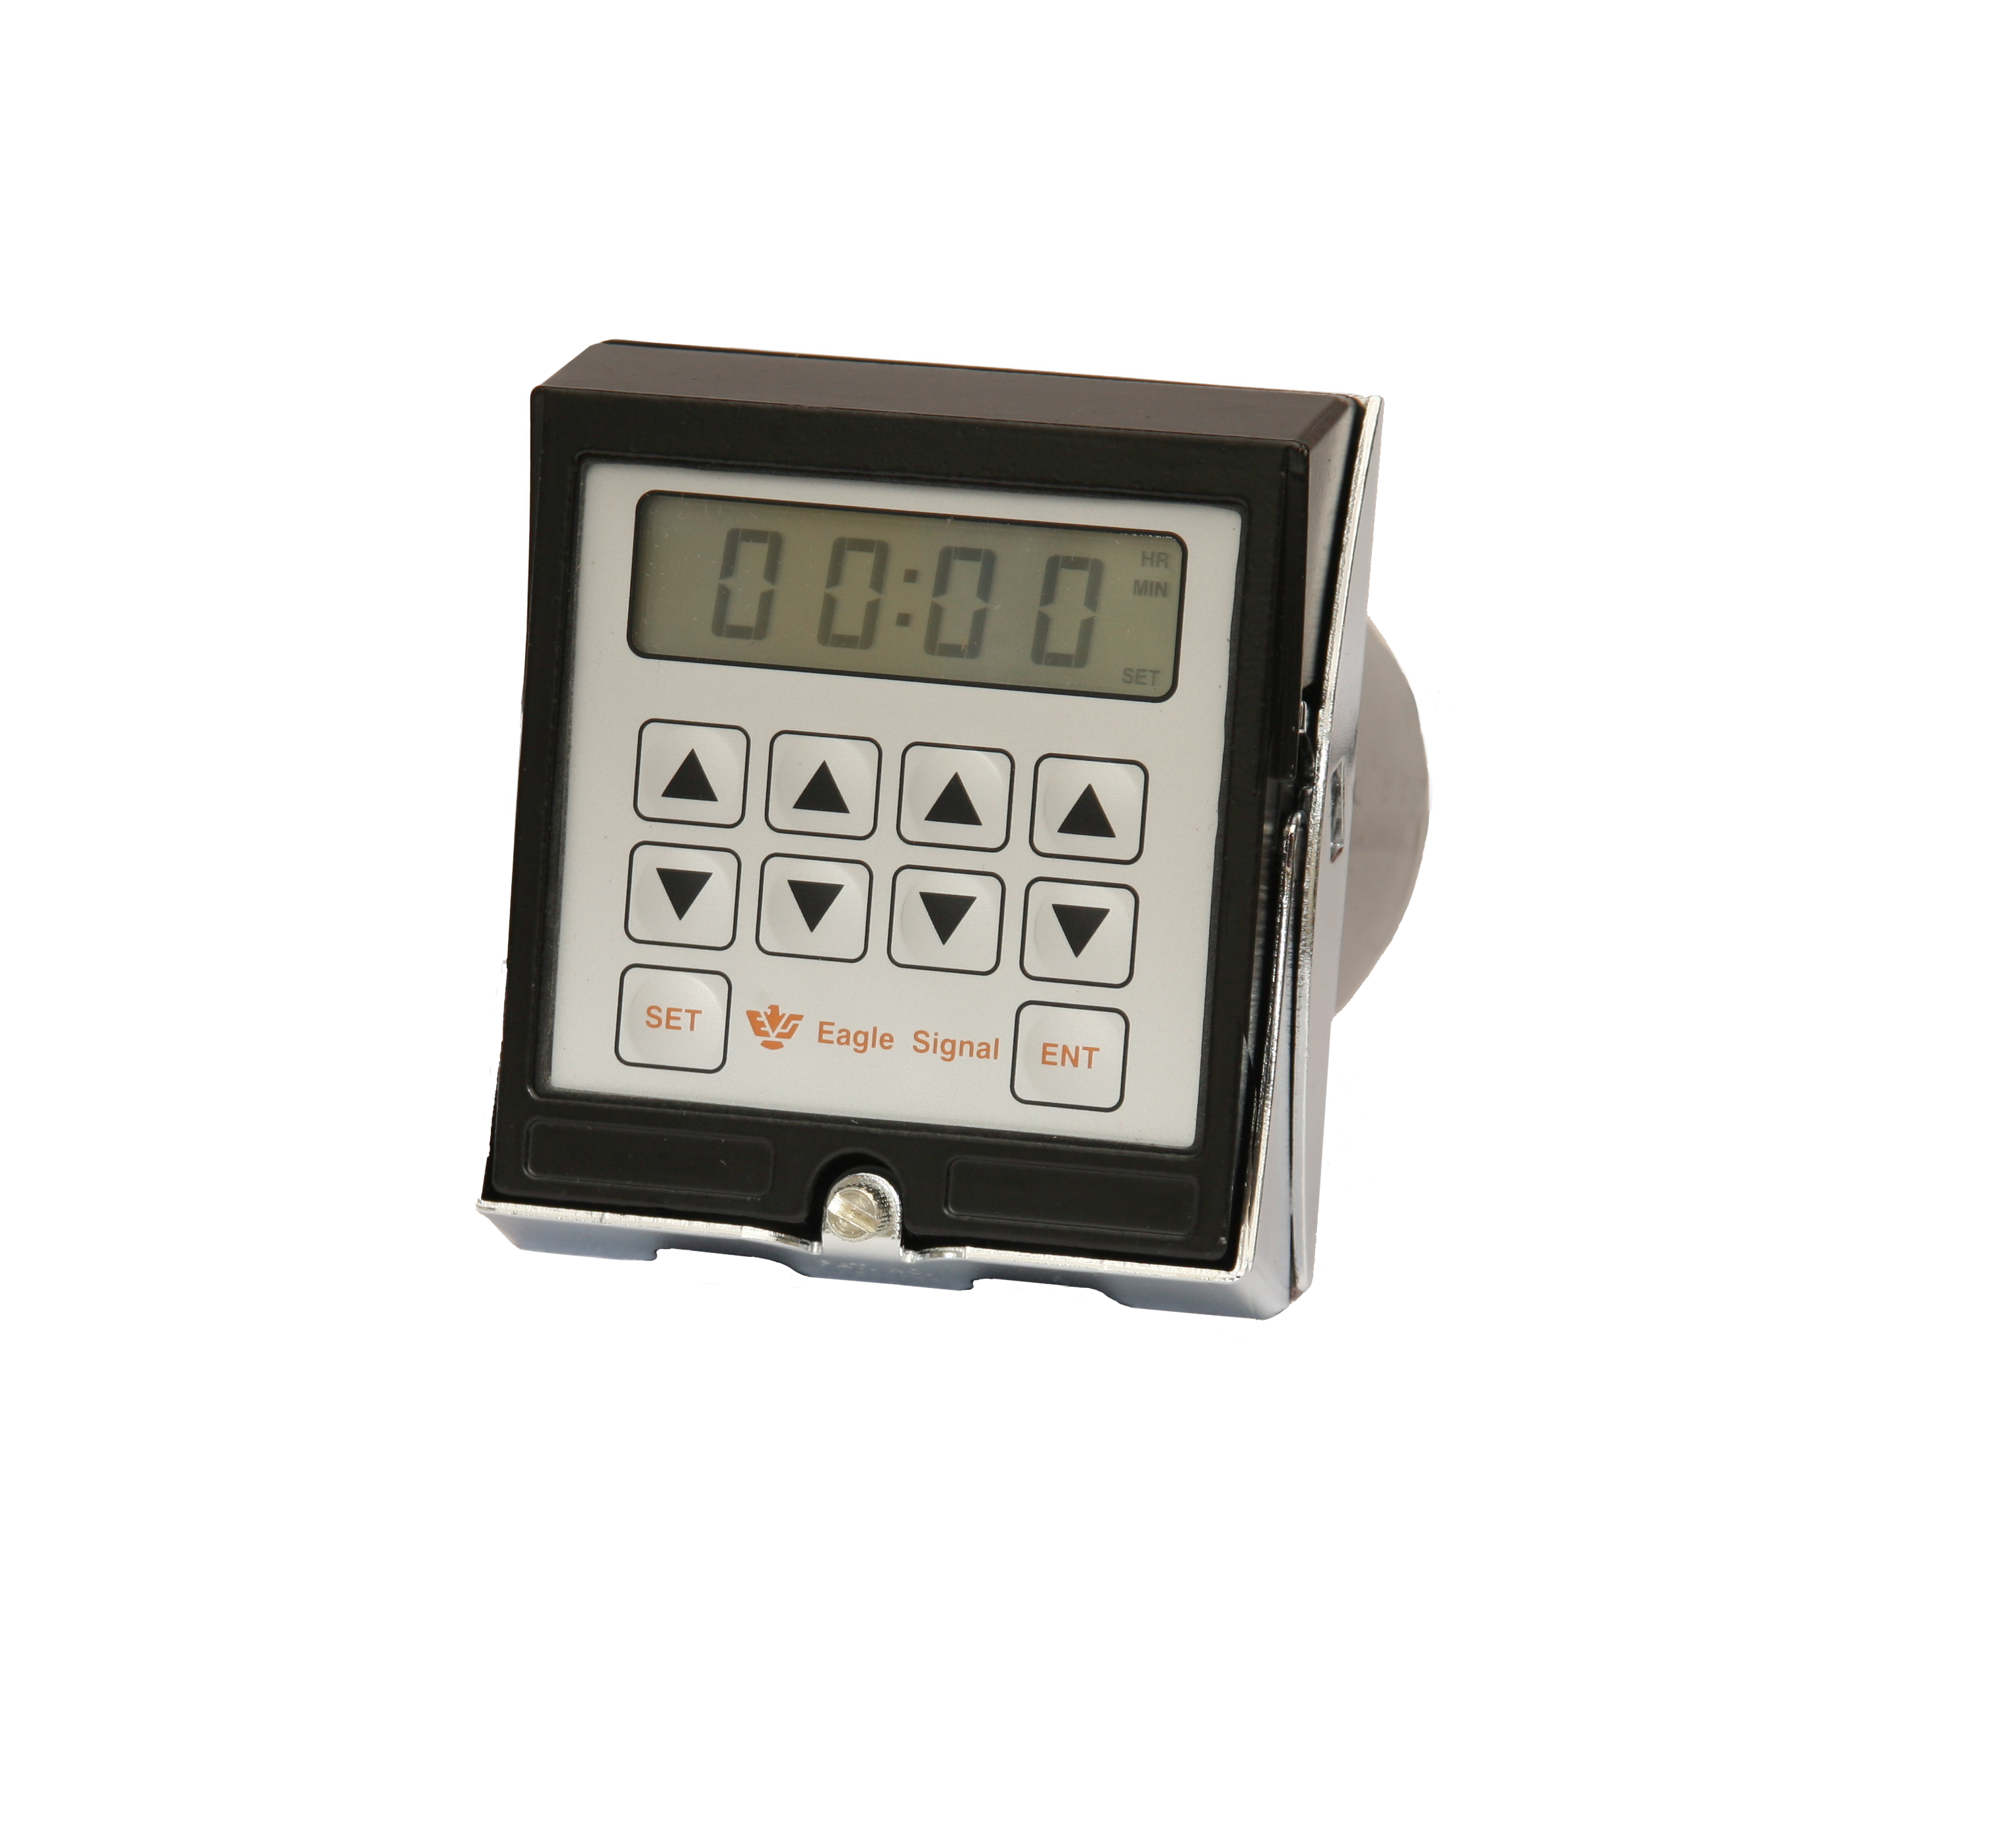 eagle signal electronic timers cx100 cycle flex repeat cycle timer rh specialtyproducttechnologies com Off Delay Timer Circuit Diagram Defrost Timer Diagram